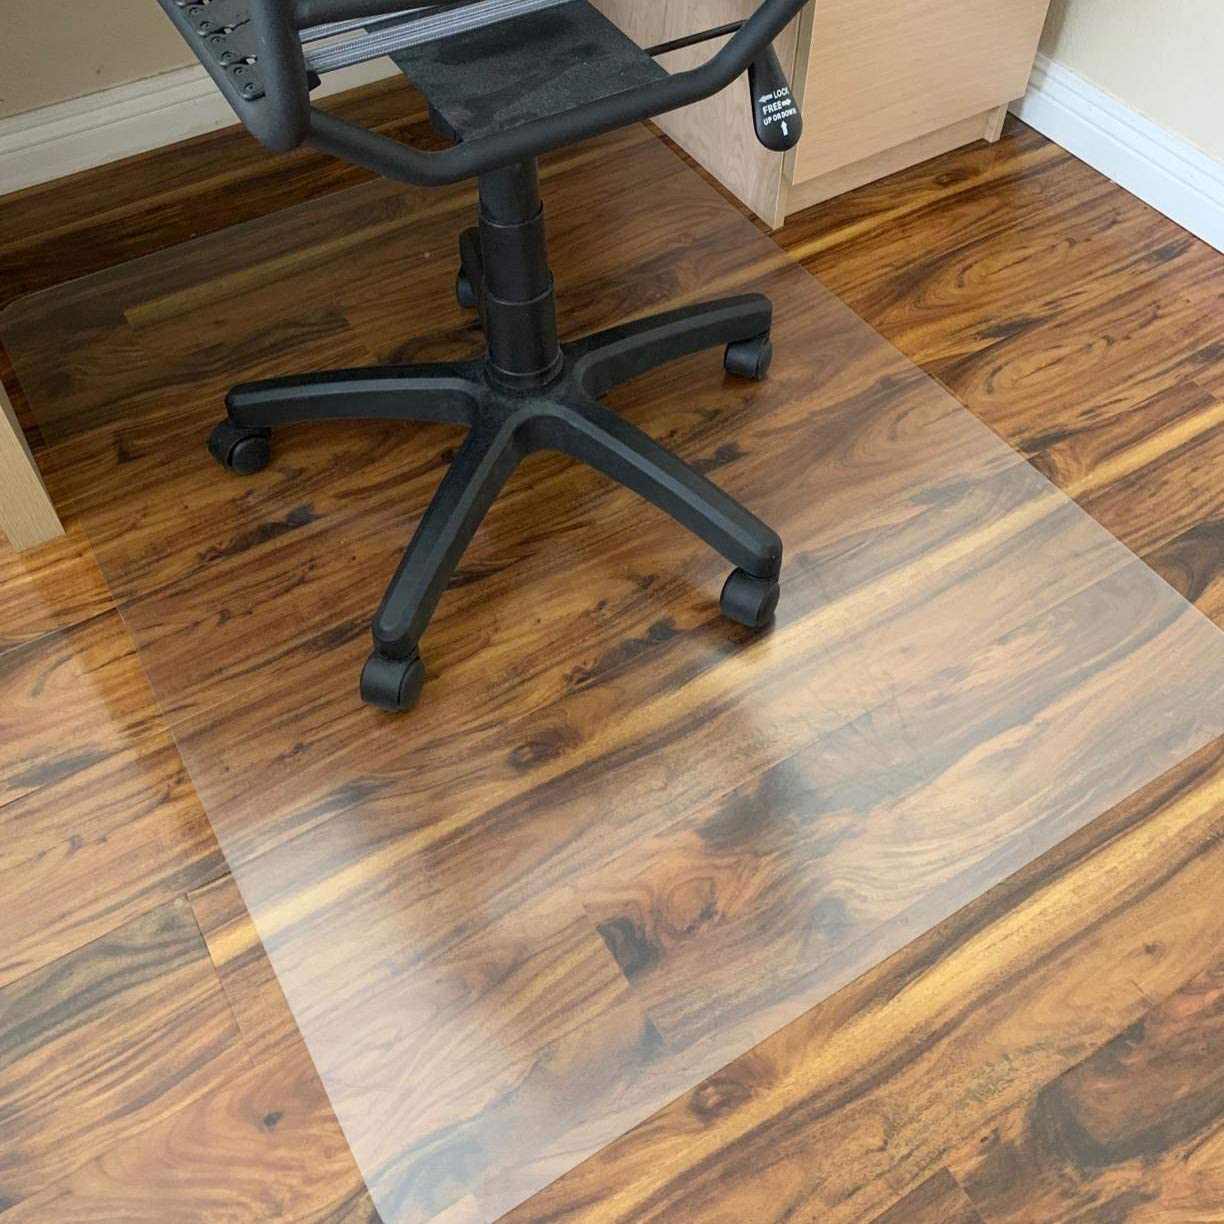 "Polycarbonate Office Chair Mat for Hardwood Floor, Floor Mat for Office Chair(Rolling Chairs)-Desk Mat&Office Mat for Hardwood Floor-Sturdy&Durable, Immediately Flat When Taken Out of Box: 30""x48"""